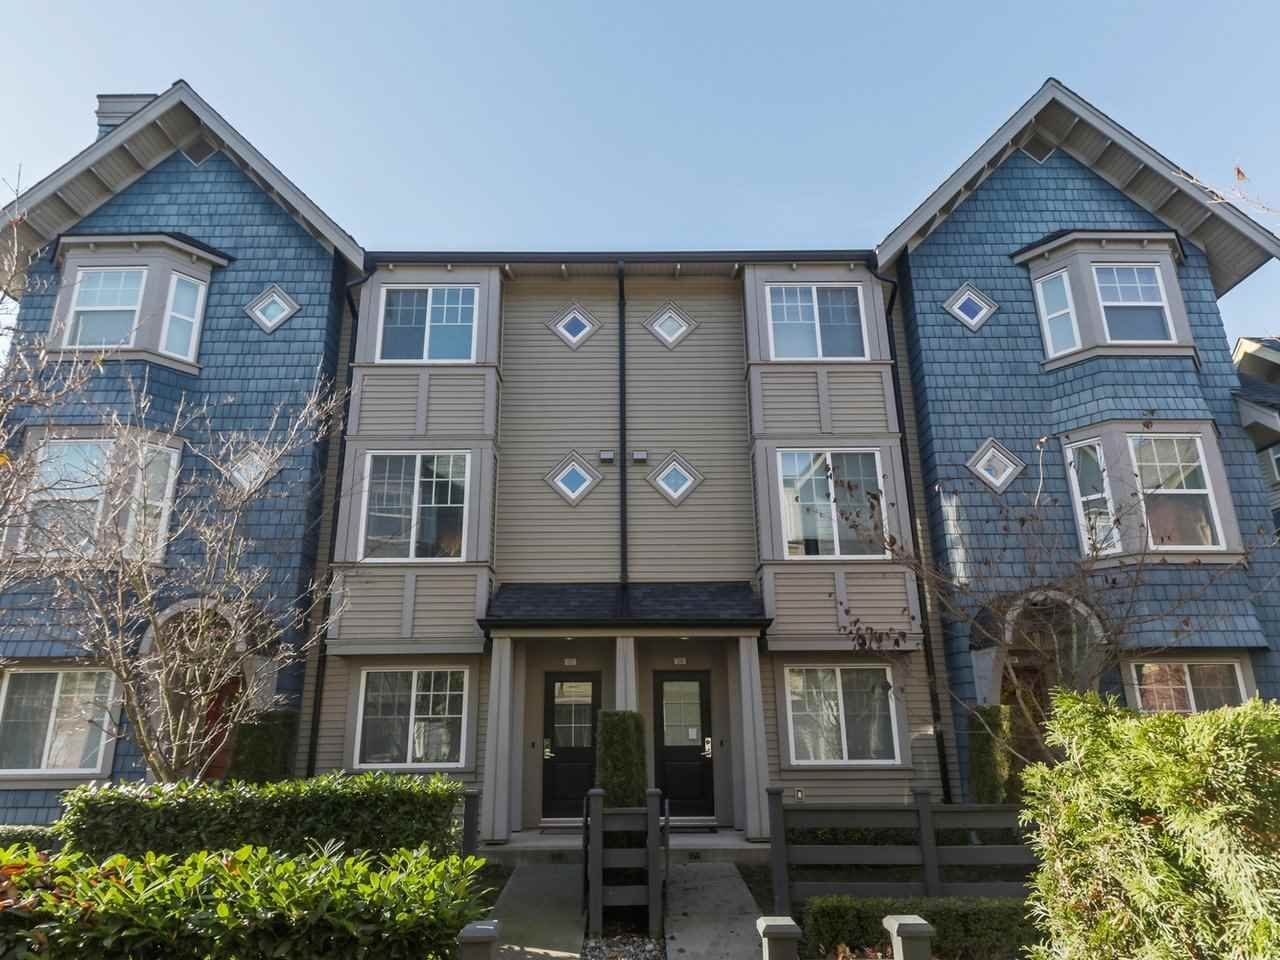 """Main Photo: 27 6450 187 Street in Surrey: Cloverdale BC Townhouse for sale in """"Hillcrest"""" (Cloverdale)  : MLS®# R2421299"""